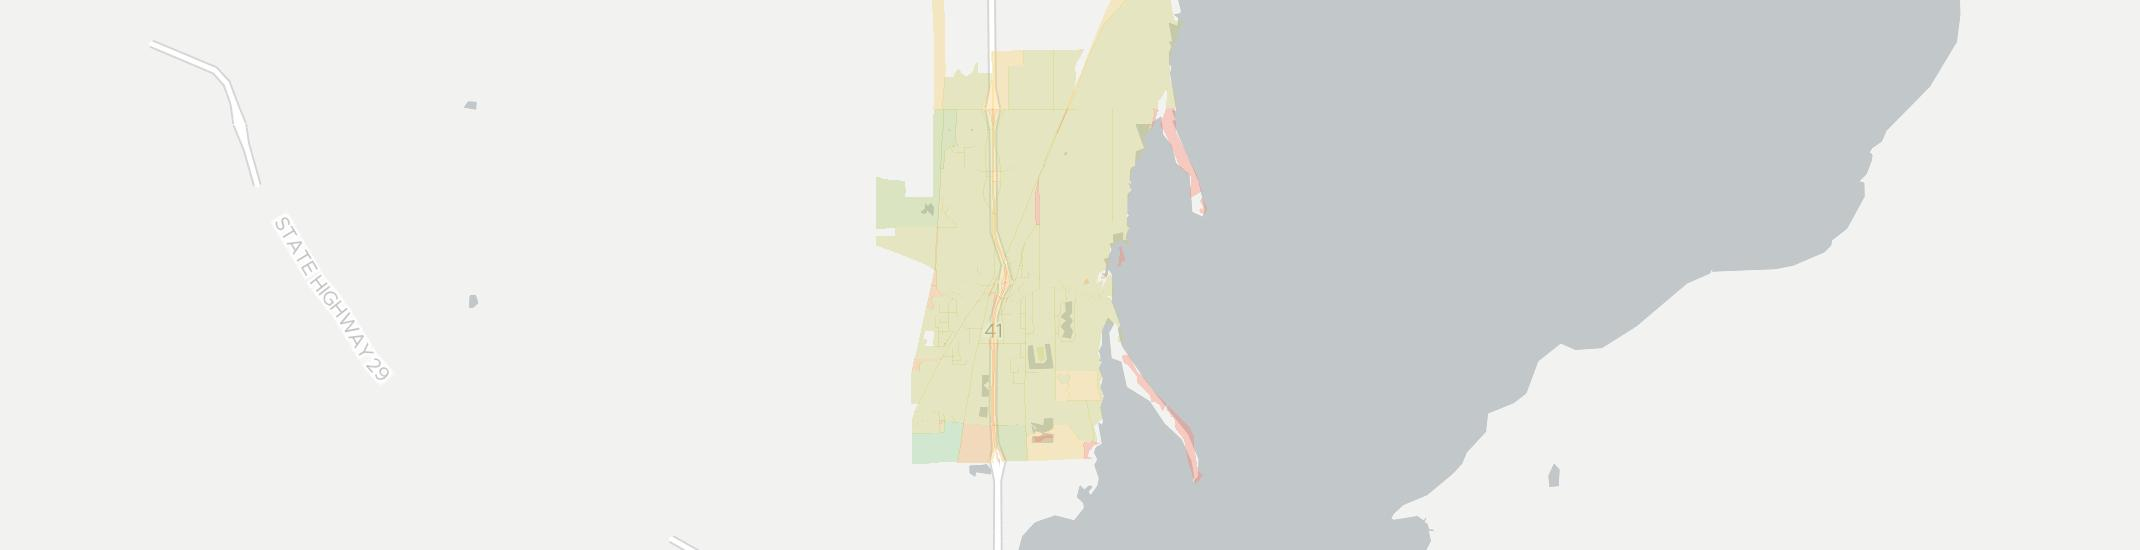 Suamico Internet Competition Map. Click for interactive map.